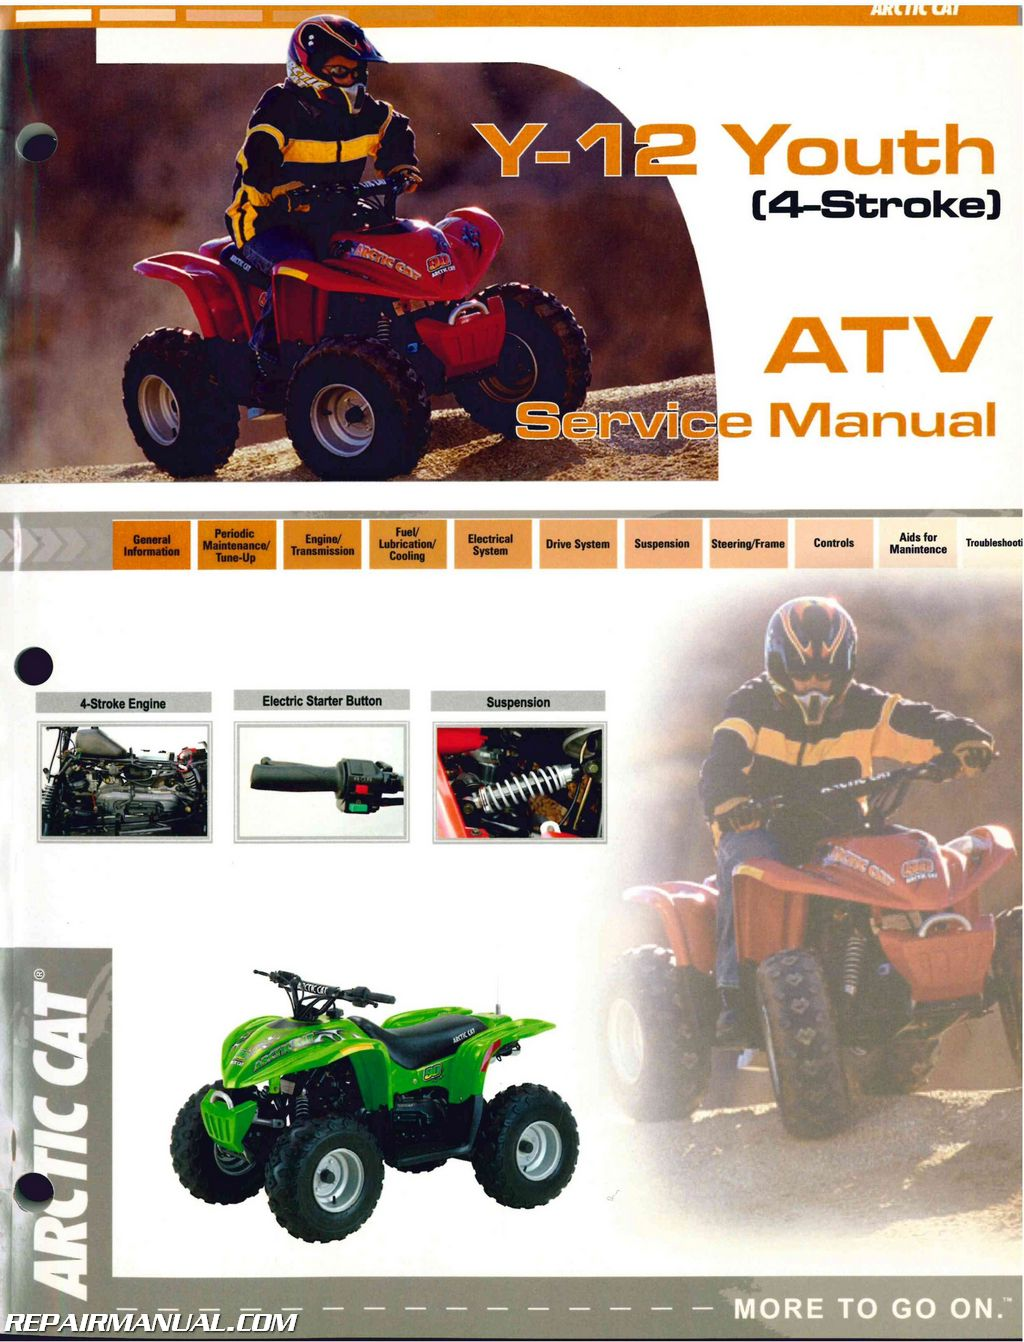 Arctic Cat Atv Wiring Diagram 2004 Just Another Blog 08 500 90 Library Rh 72 Nepalchitragupta Org